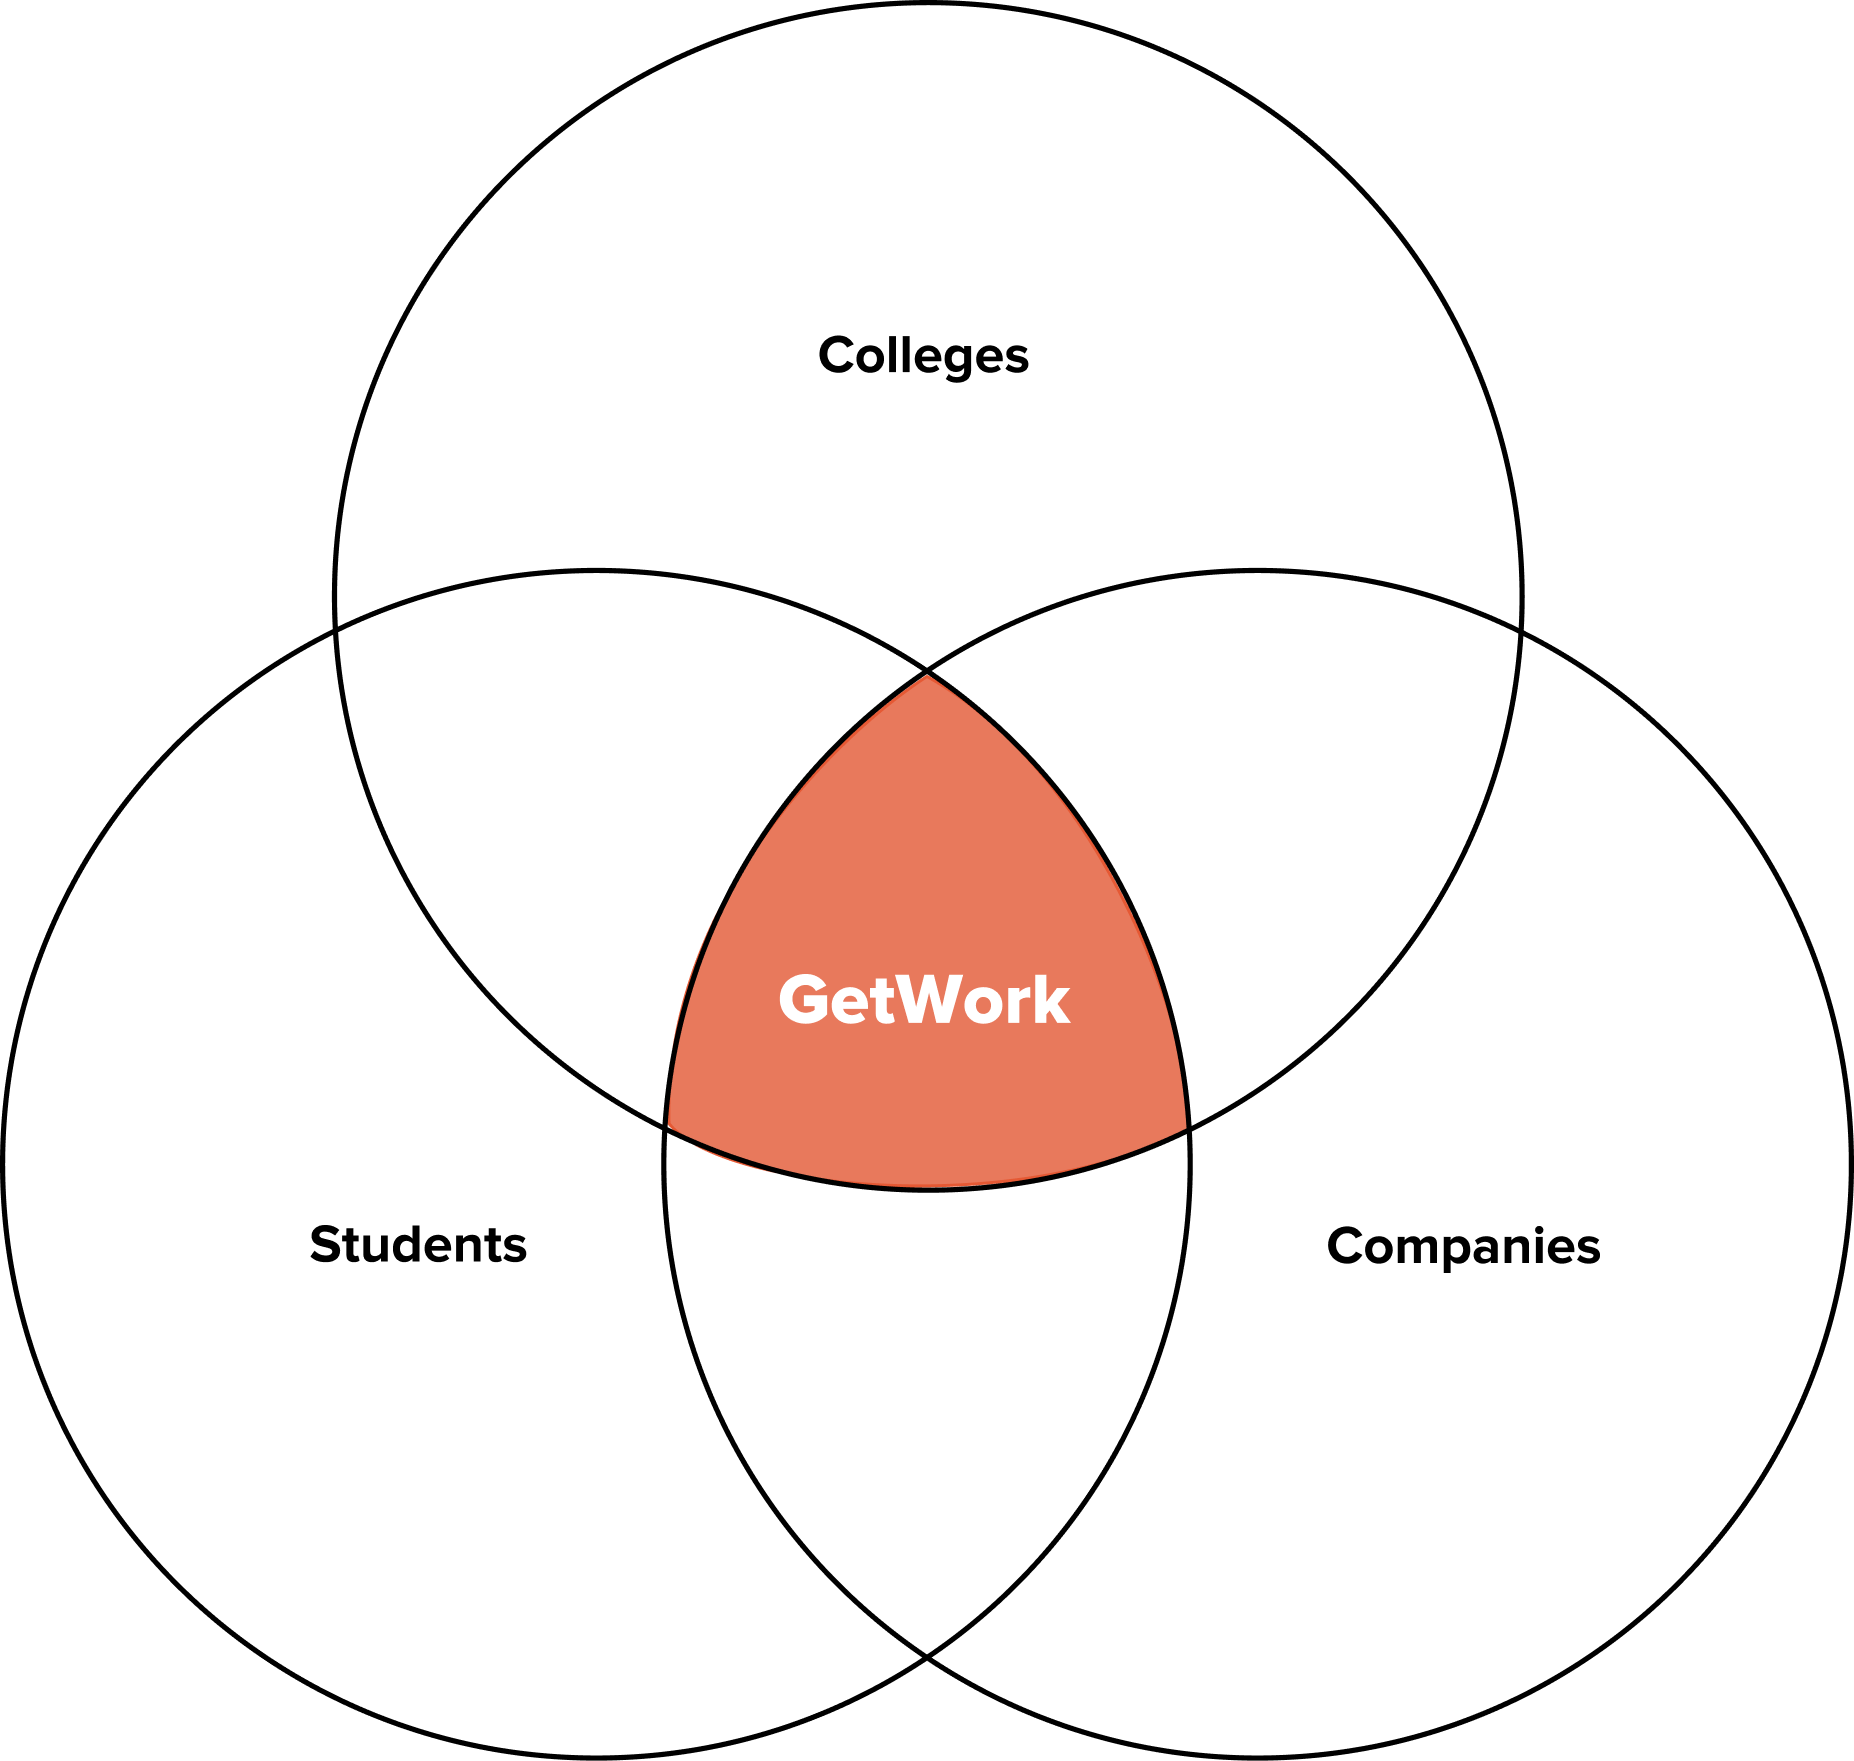 Venn Diagram representing Getwork as an Ecosystem for colleges, students and companies.